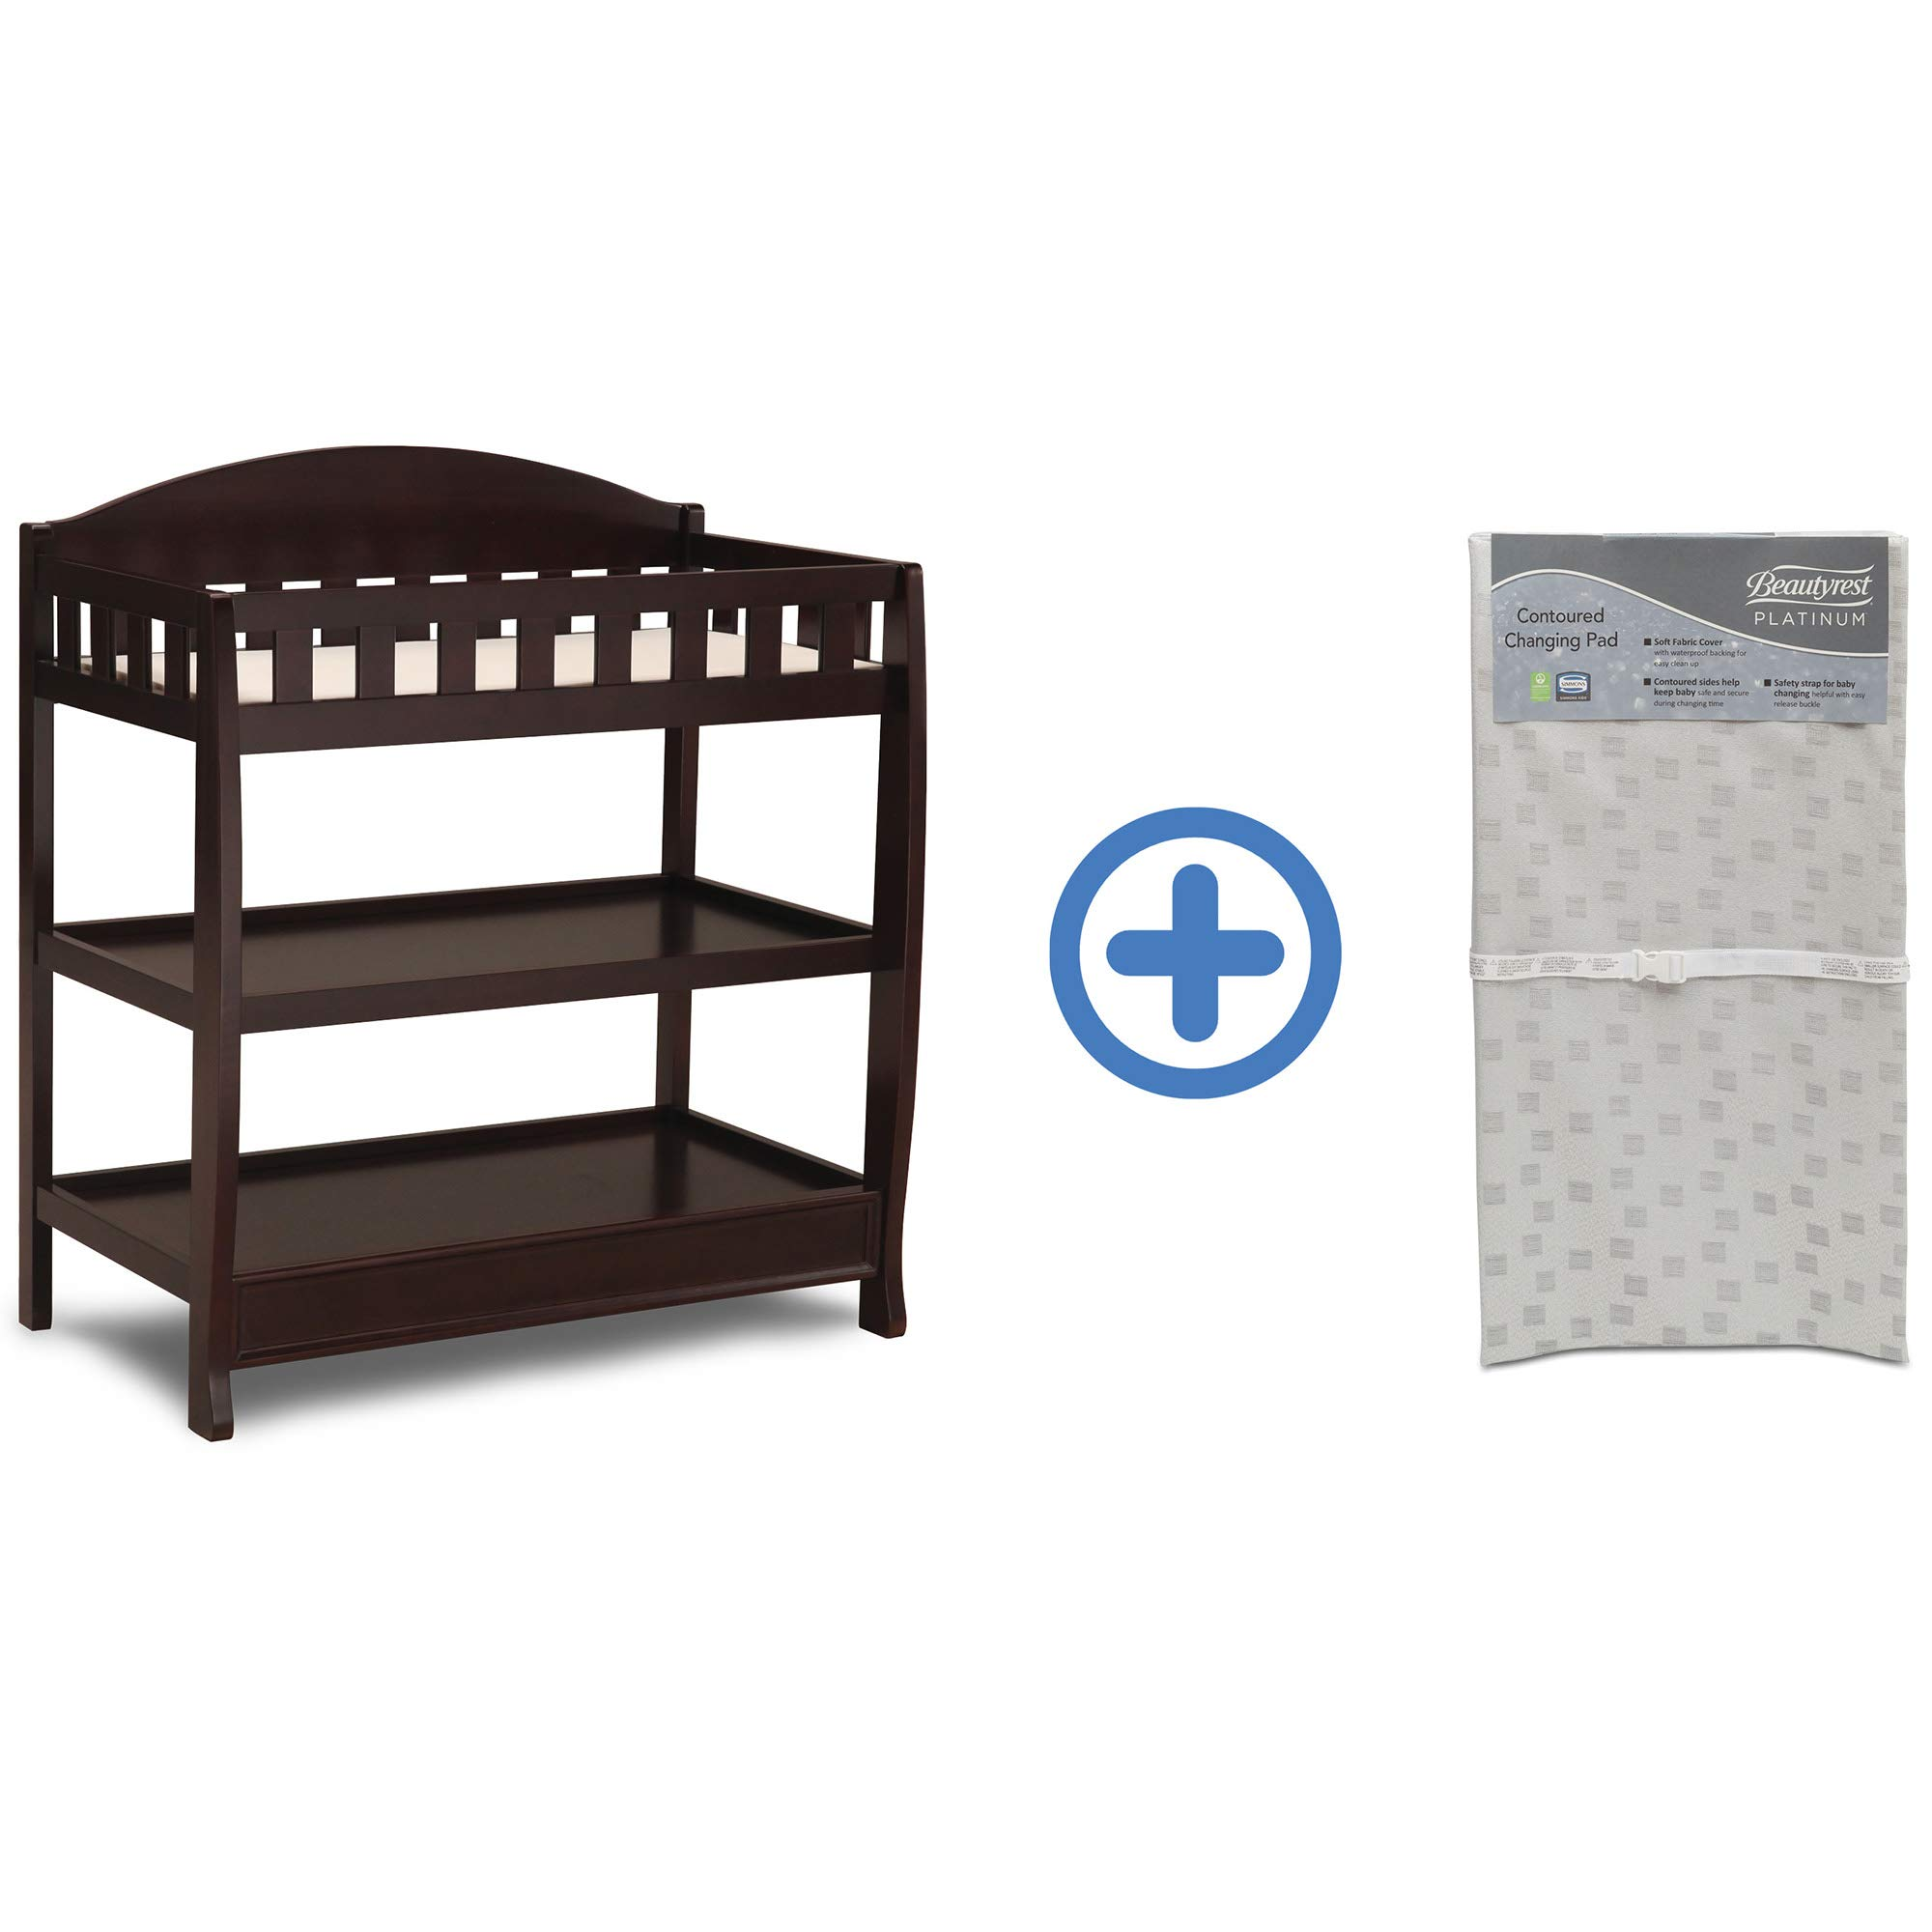 Delta Children Infant Changing Table with Pad, Dark Chocolate and Waterproof Baby and Infant Diaper Changing Pad, Beautyrest Platinum, White